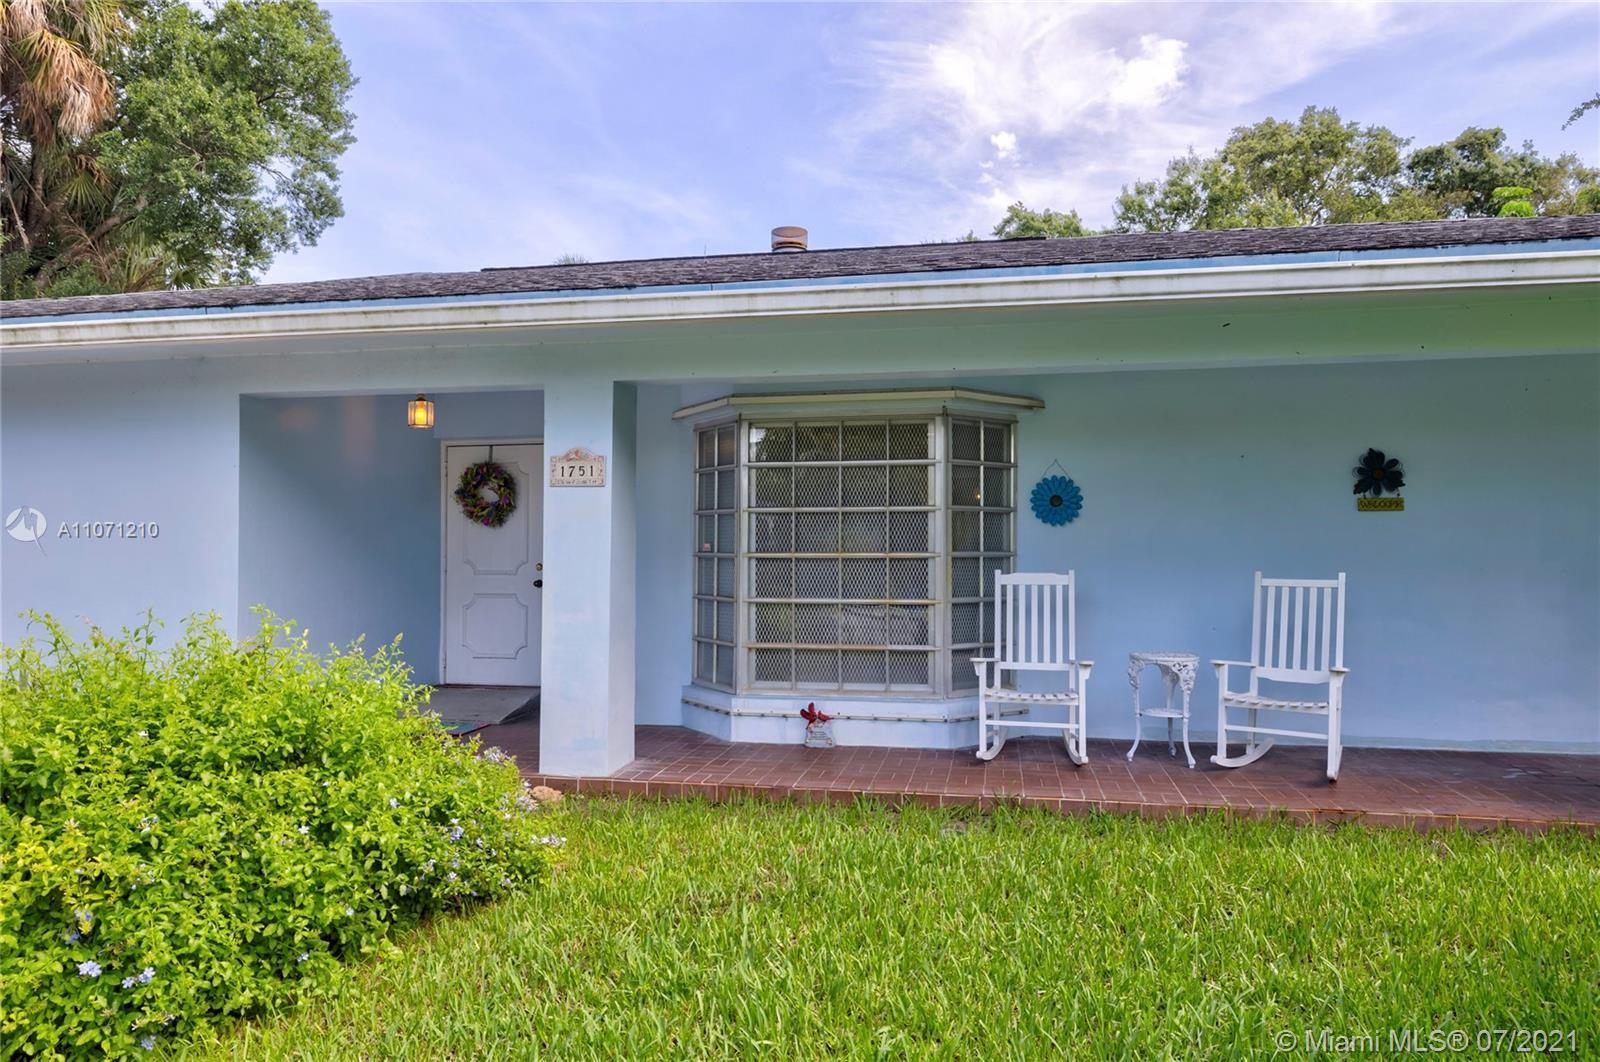 Located in EDGEWOOD by Marina Mile in East Ft Lauderdale this ranch style home is on a quiet cul de